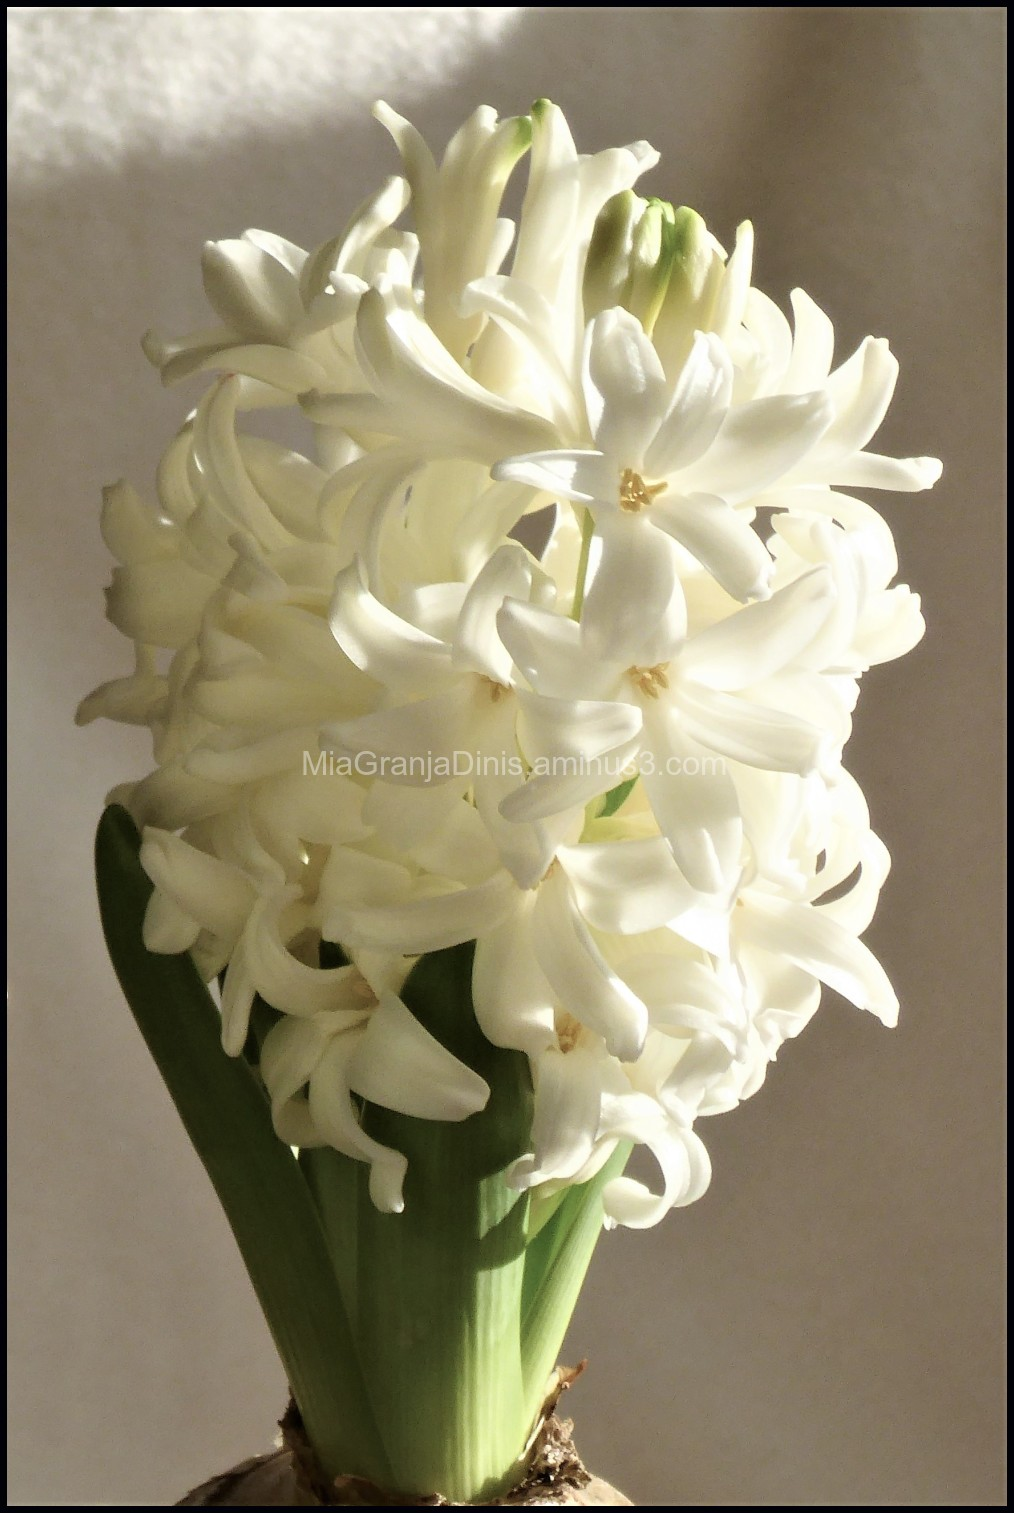 Scented hyacinth for Christmas